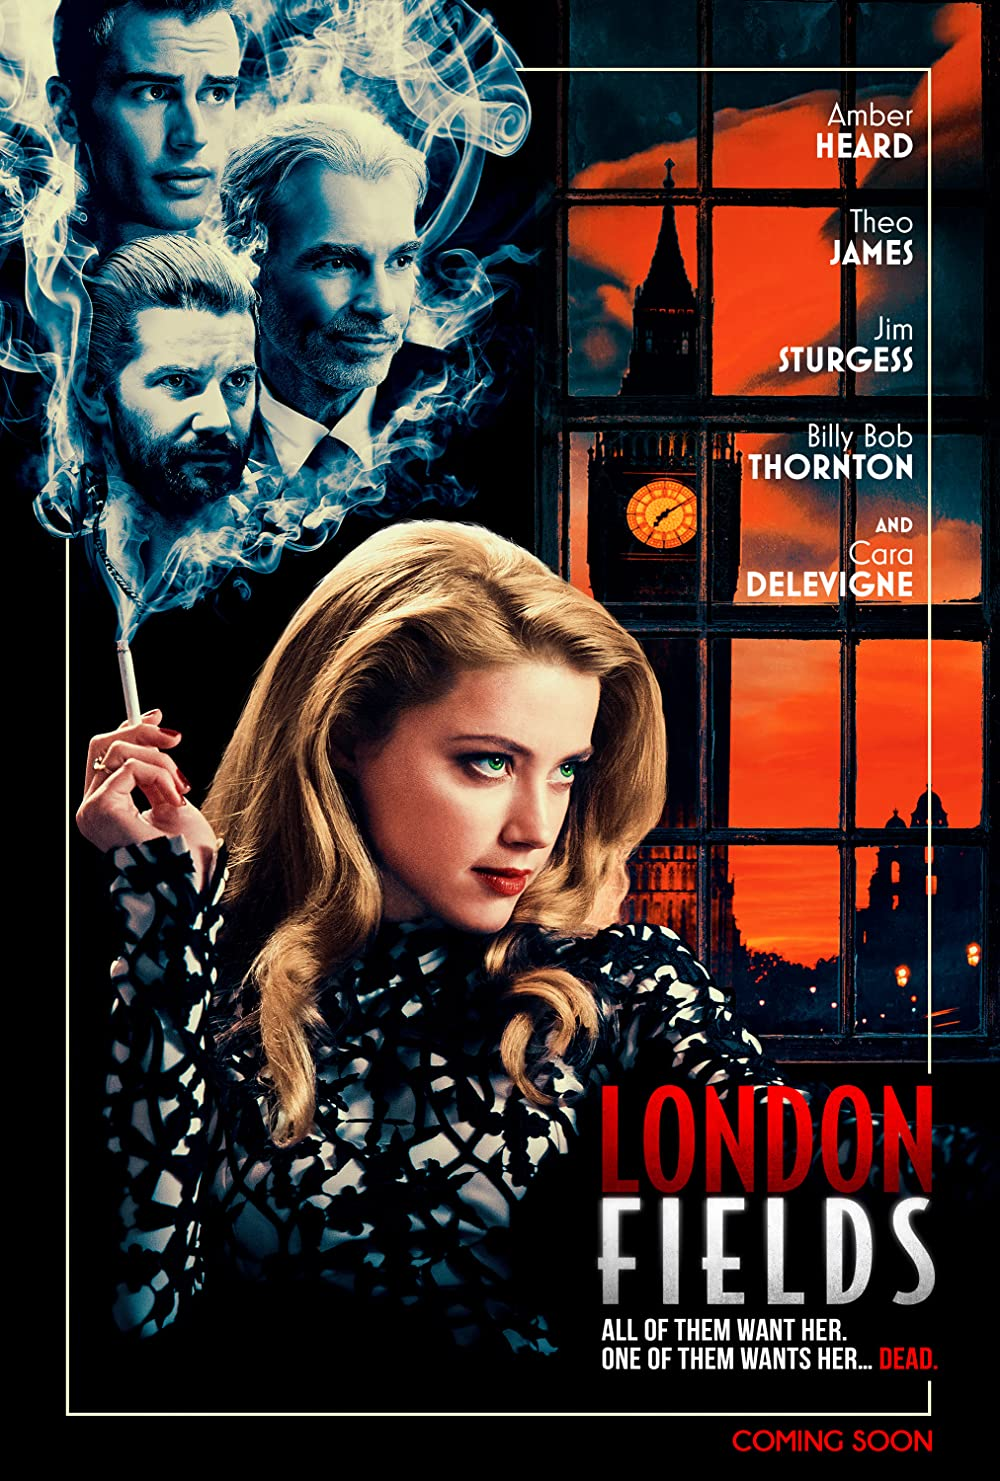 18+ London Fields 2018 Hindi ORG Dual Audio 1080p BluRay ESubs 1810MB Download